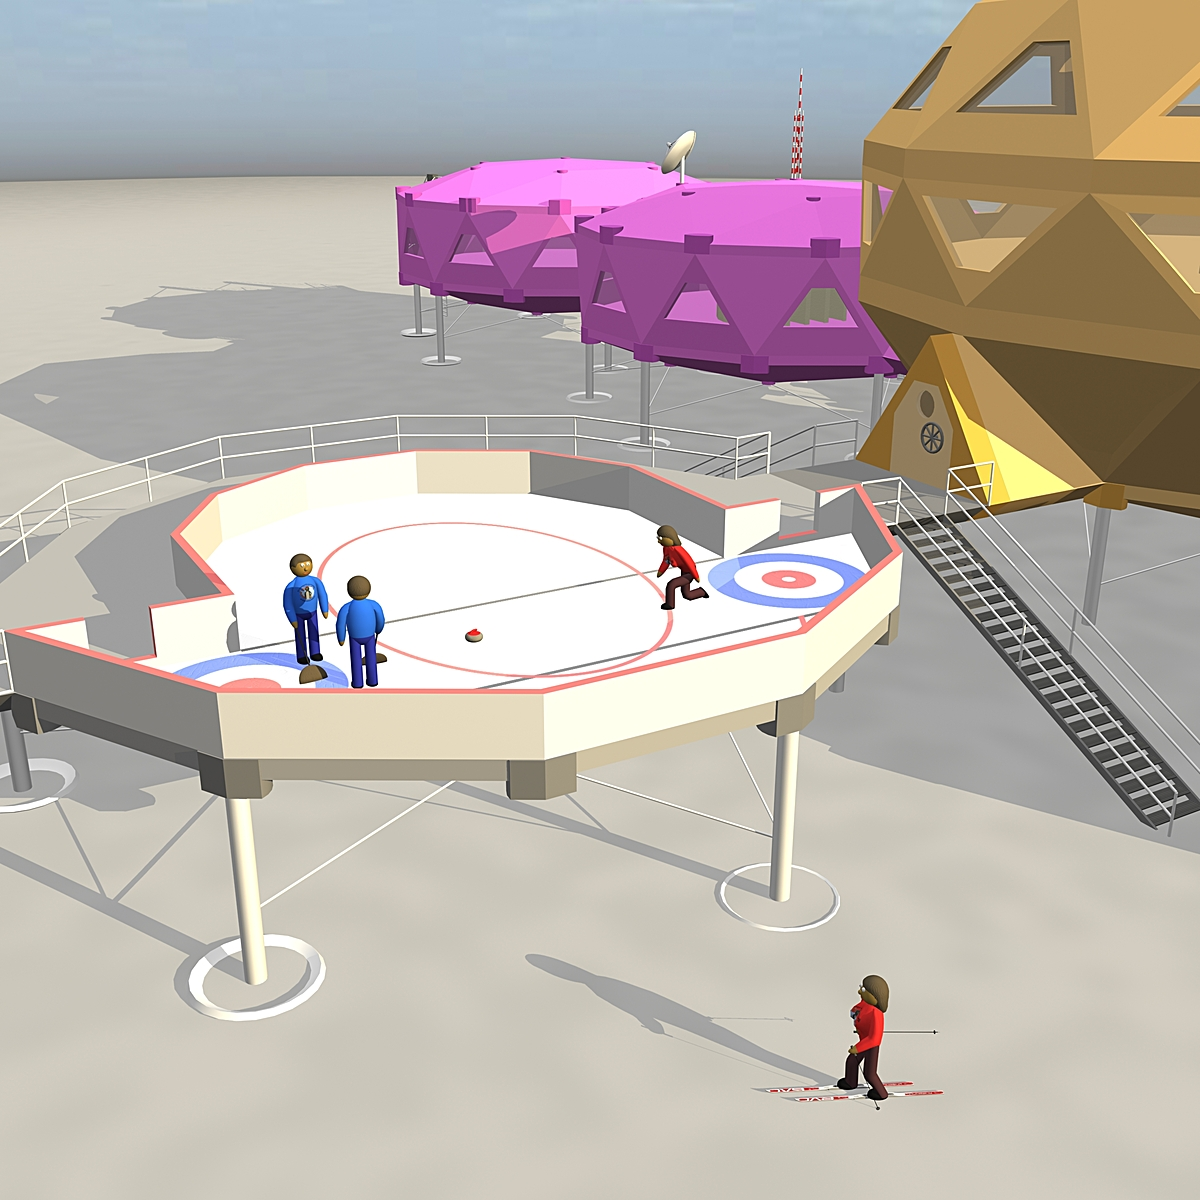 The stations ice rink is available to station residents and hotel guests. The Intrepid Penguin Lodge does its best to maintain the ice rink so that ice skaters and curlers can enjoy it. And of course, all equipment is provided by the station.